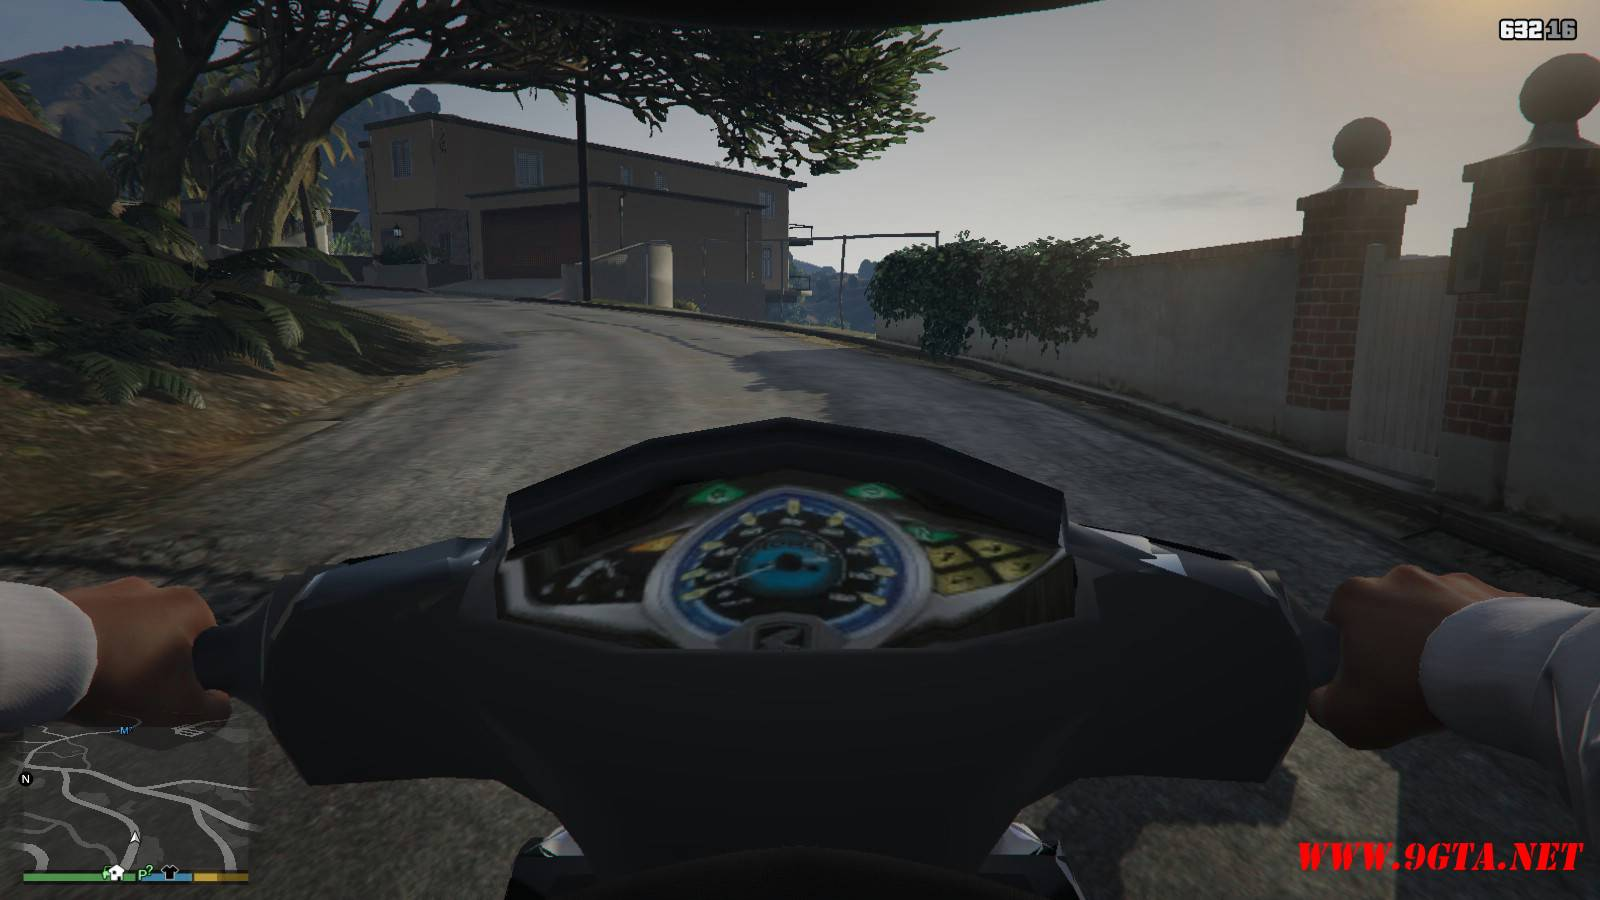 2015 Honda Wave 125i Mod For GTA5 (11)